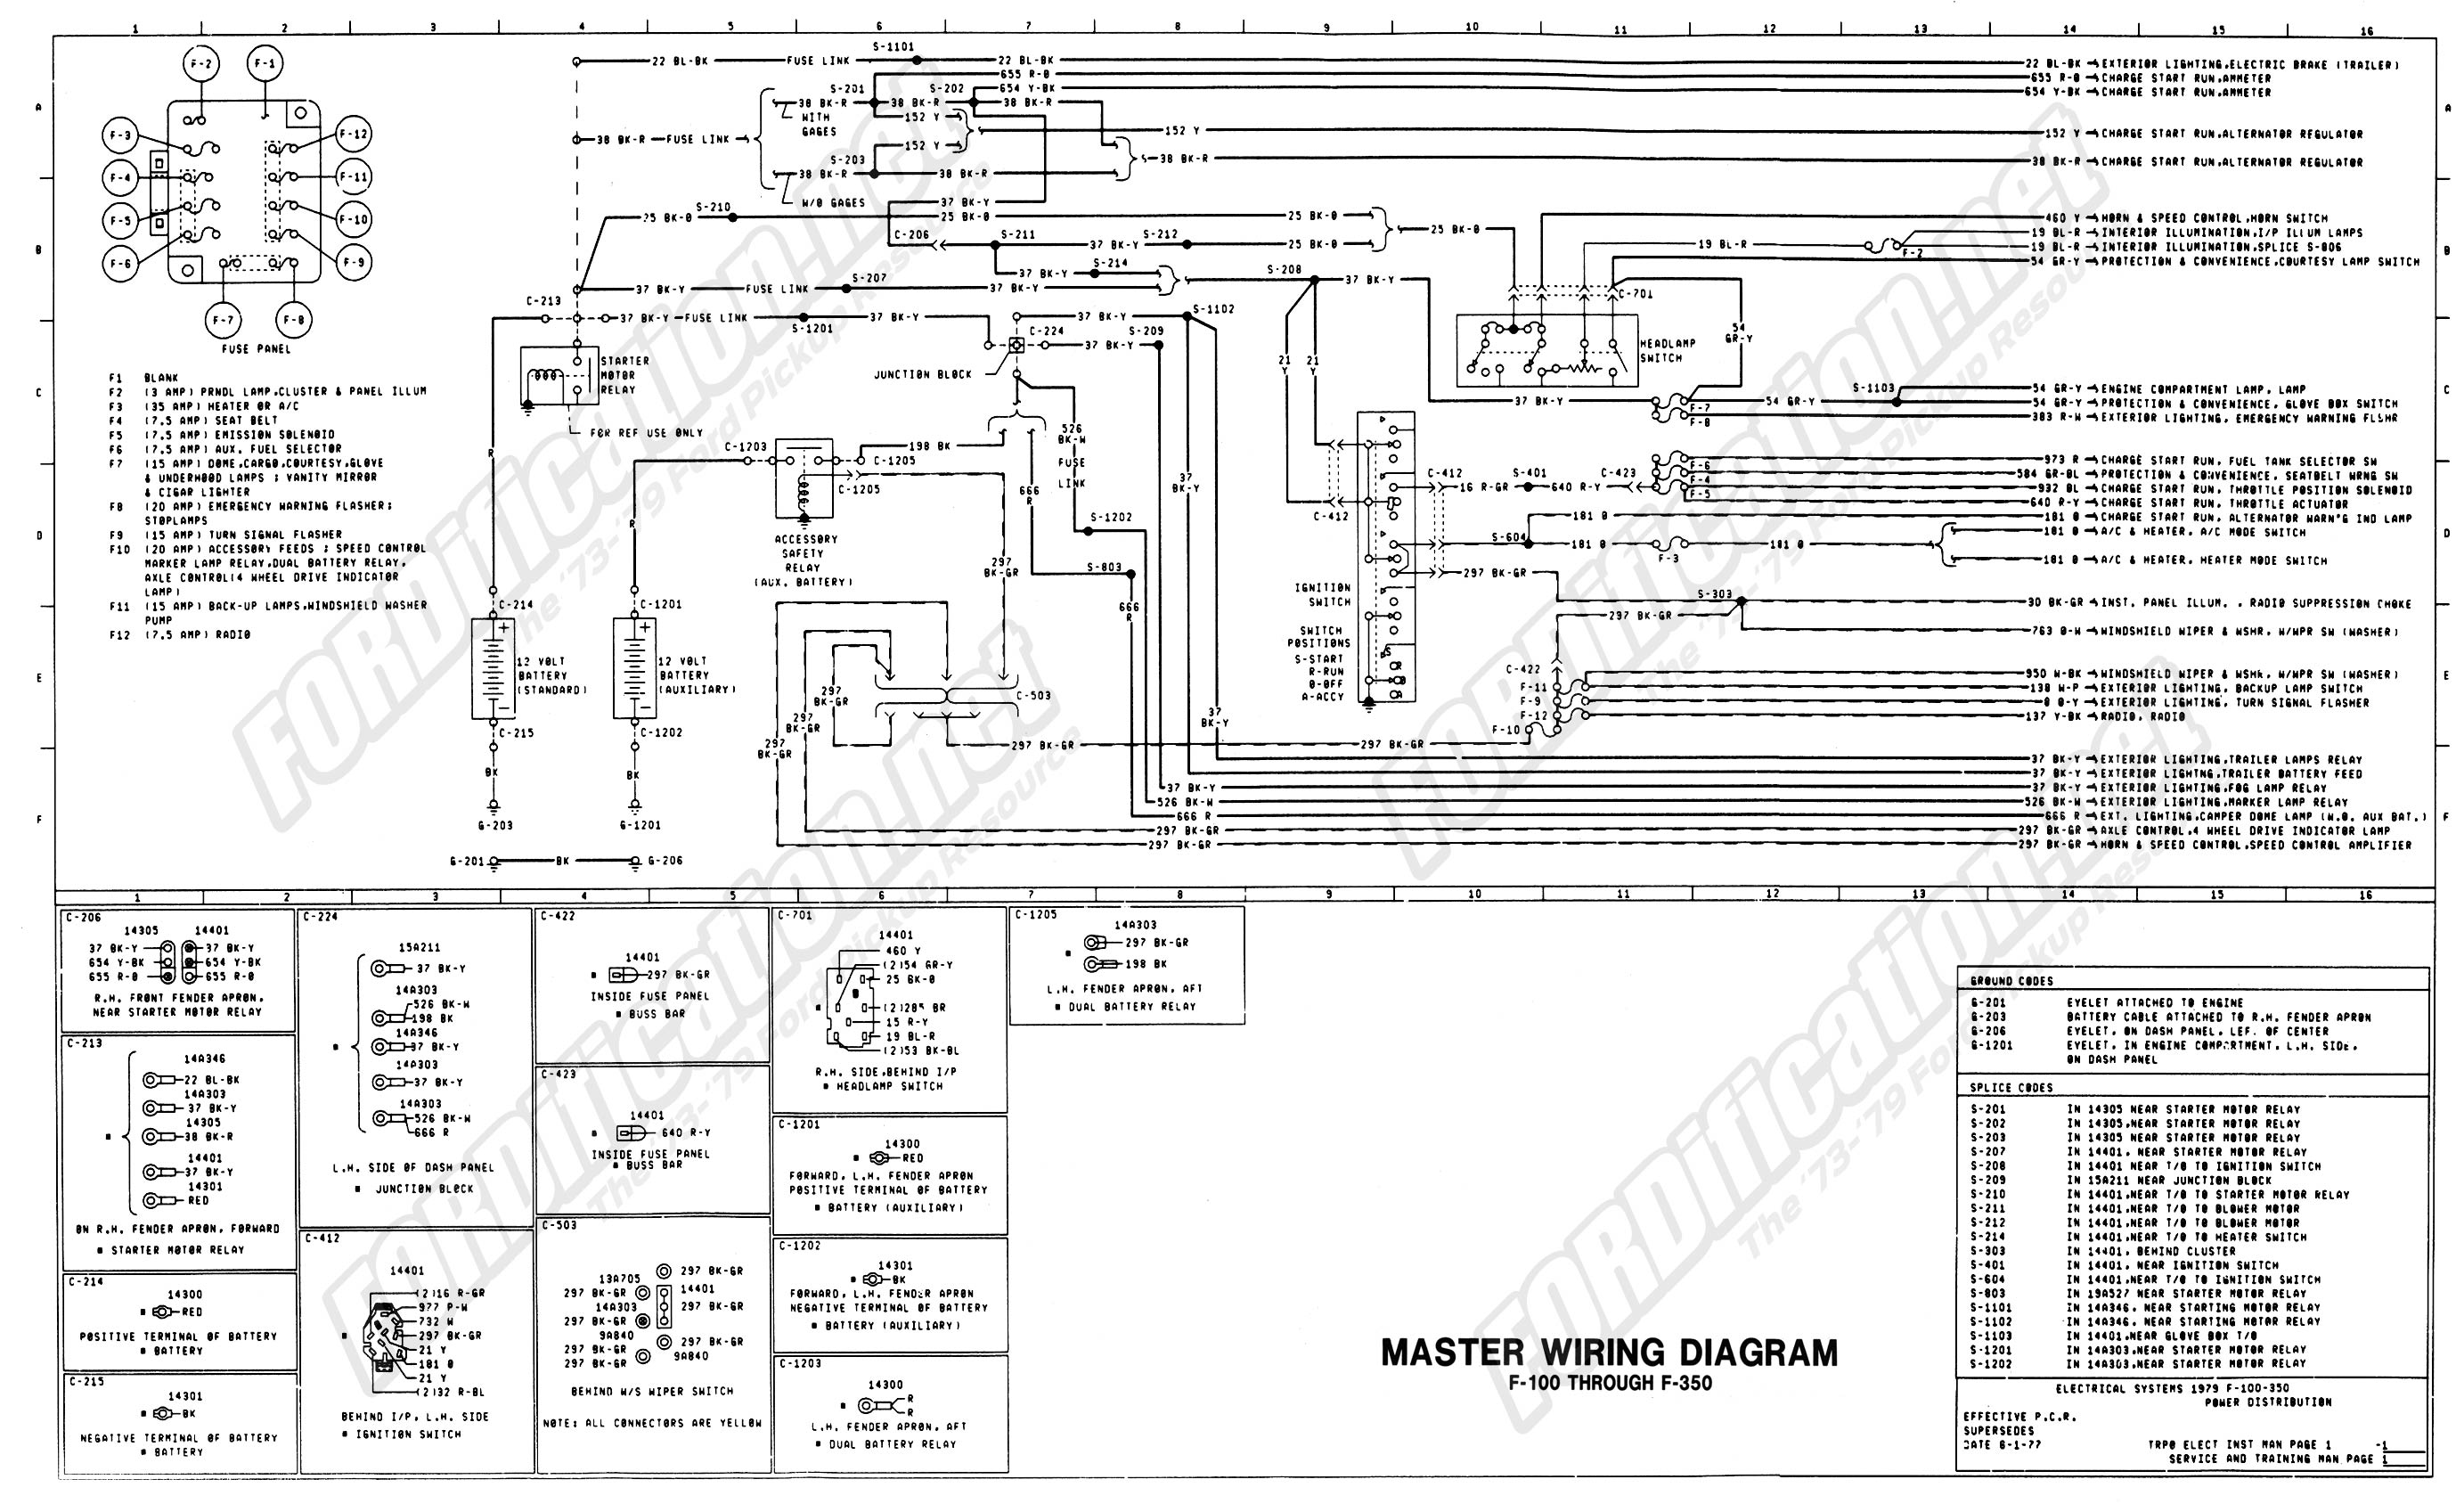 wiring_79master_1of9 wiring diagram for 1977 ford f150 readingrat net 2000 ford f150 ignition wiring diagram at honlapkeszites.co